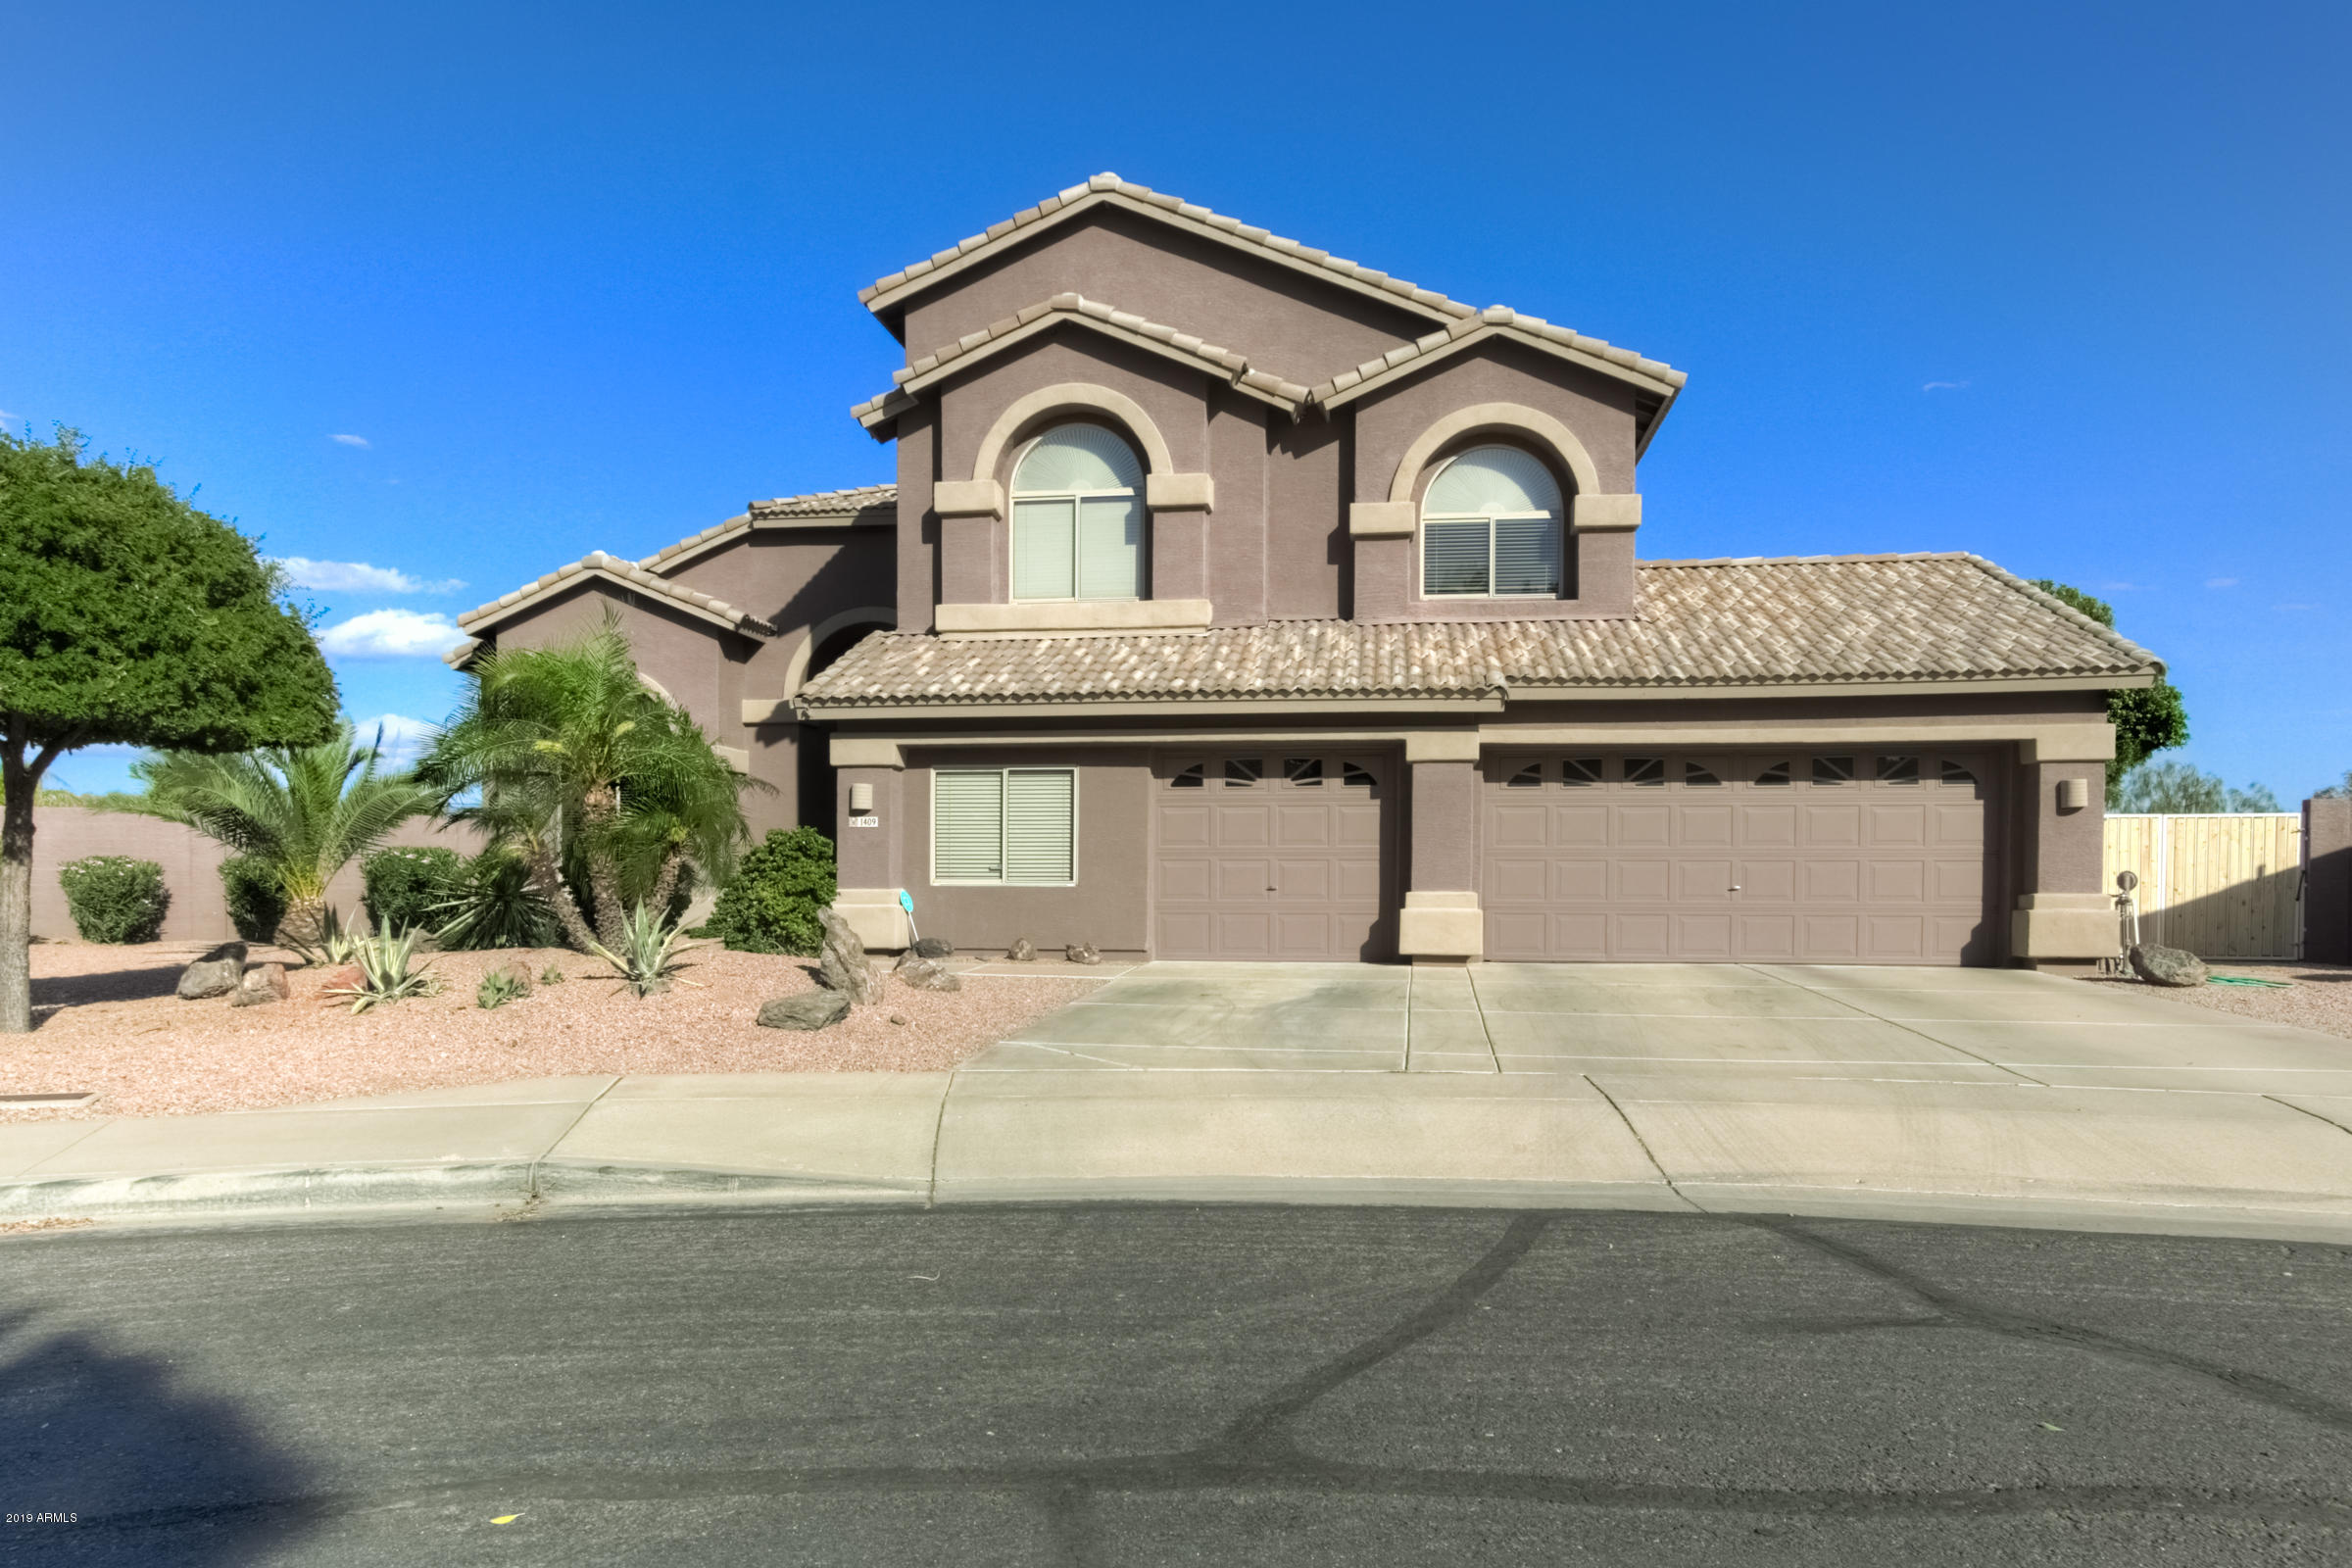 Photo of 1409 N DUVAL Street, Mesa, AZ 85207